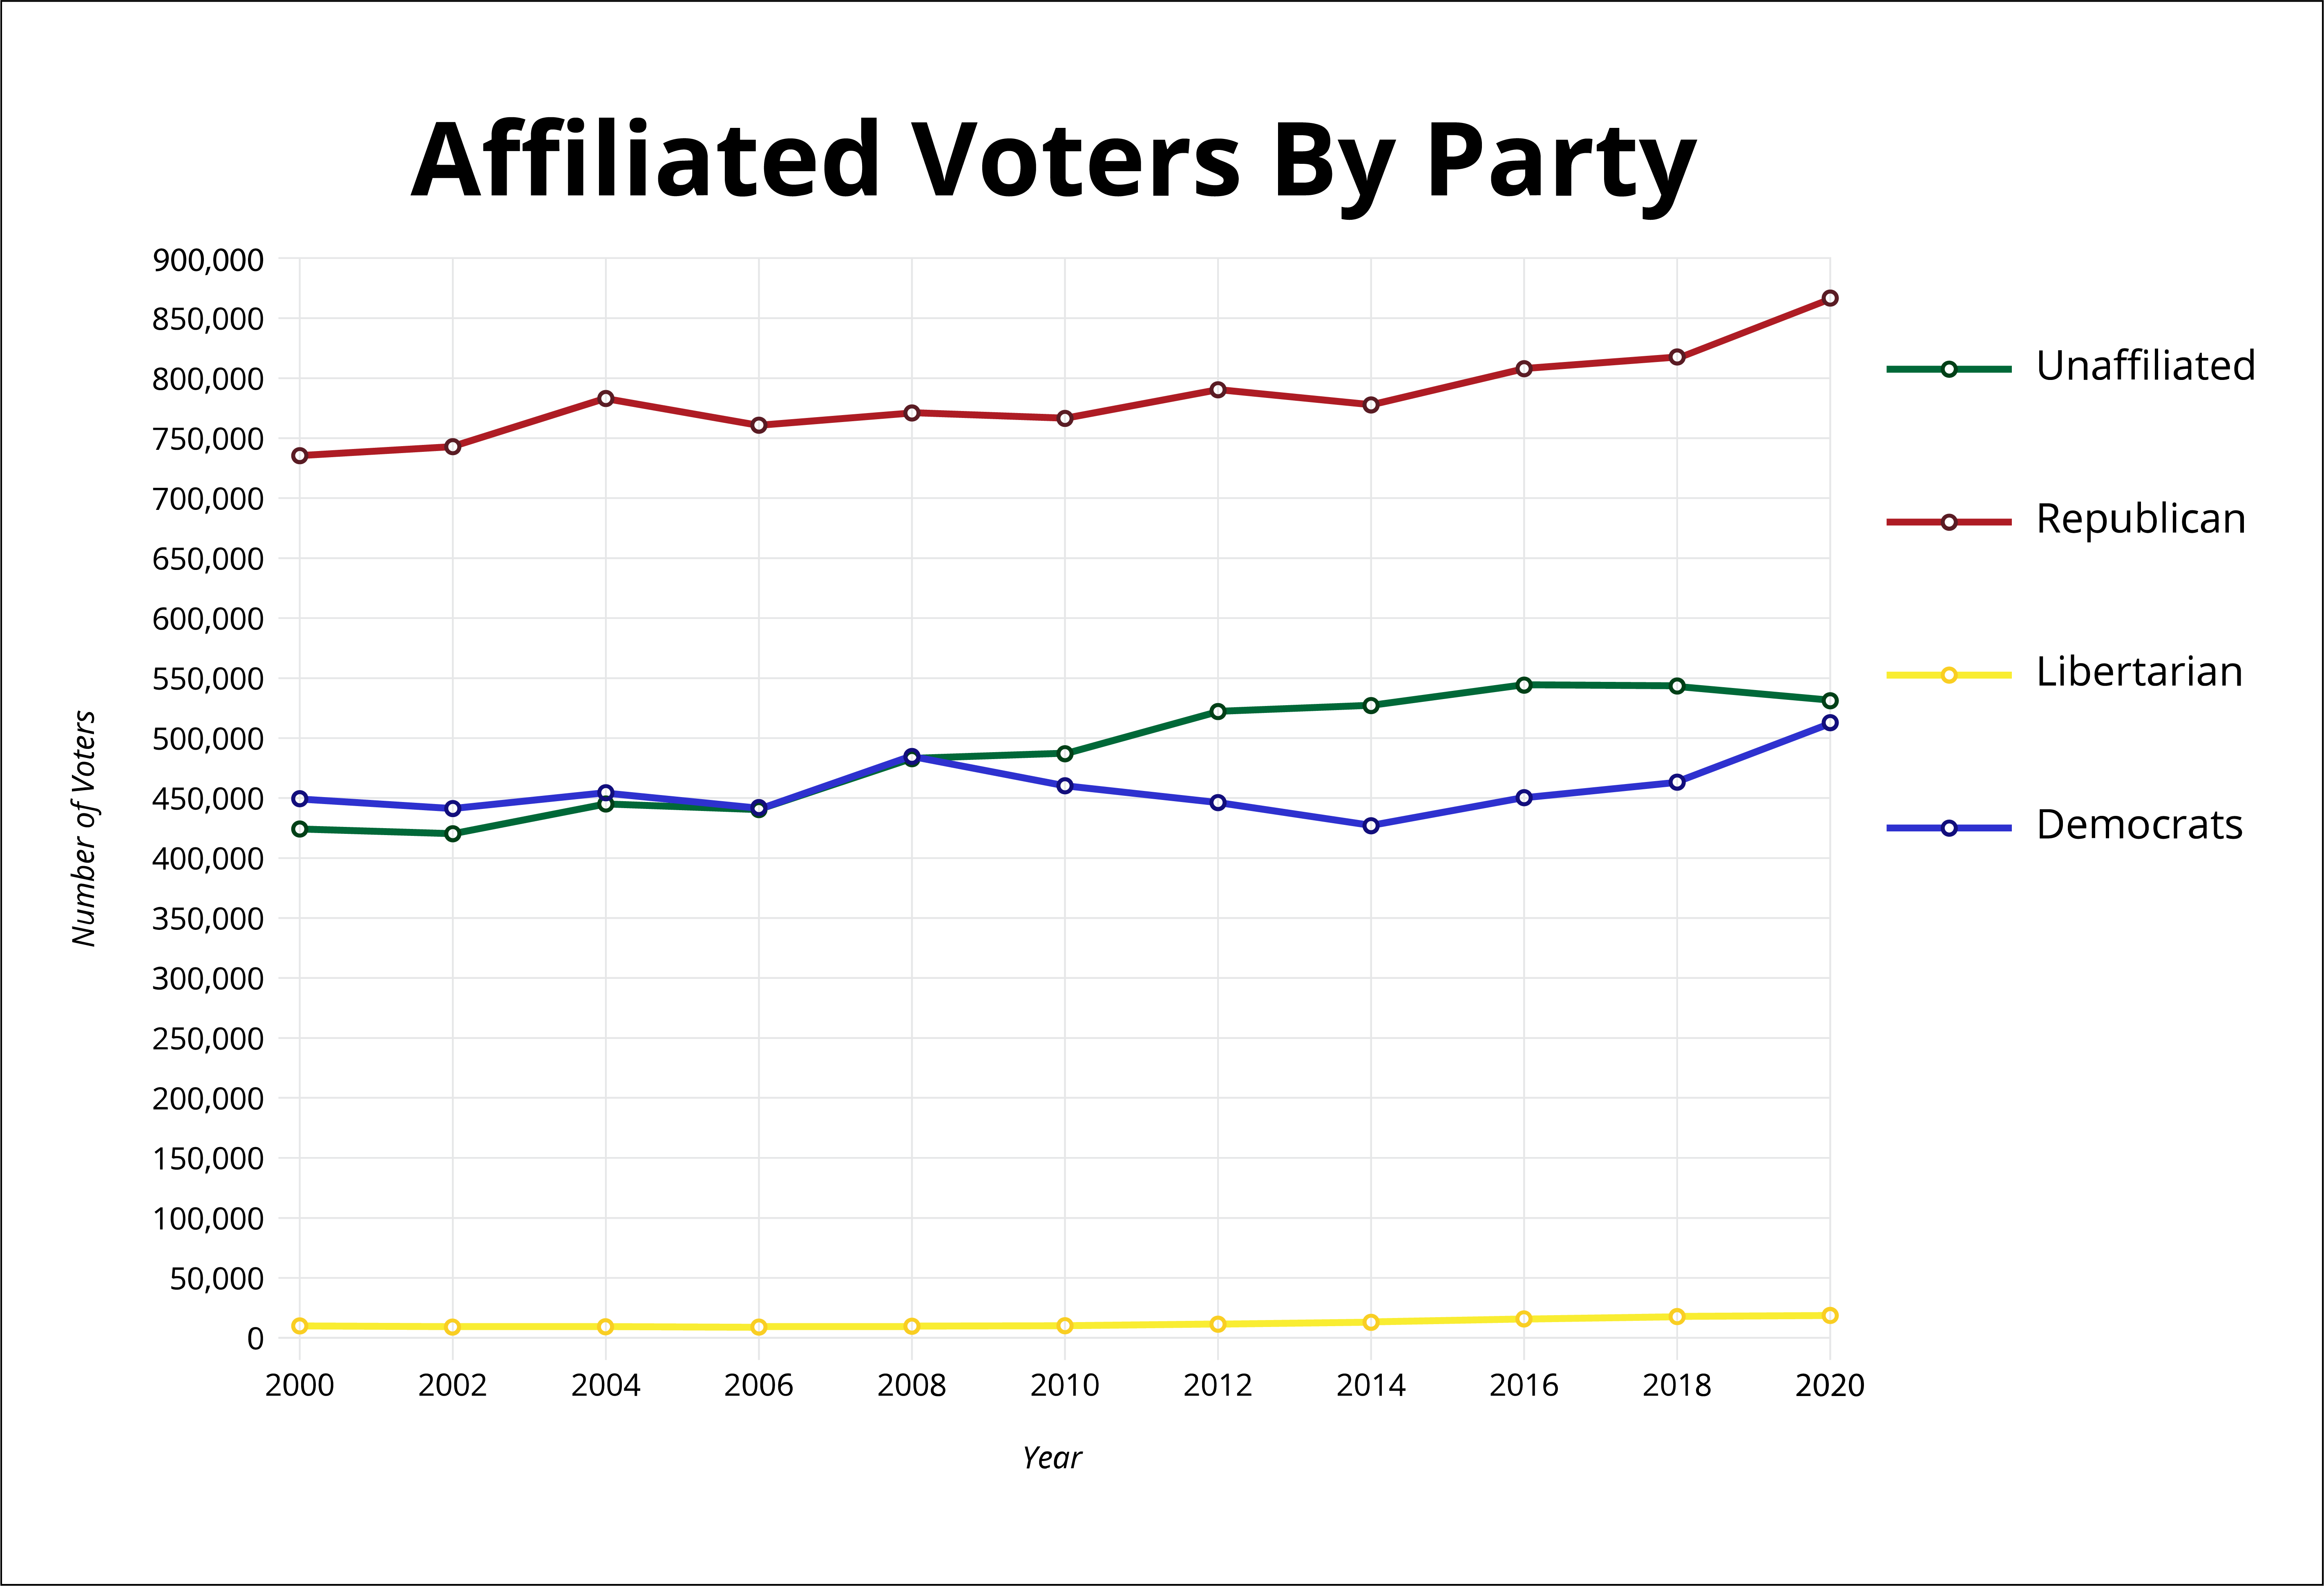 Affiliated Voters Graph